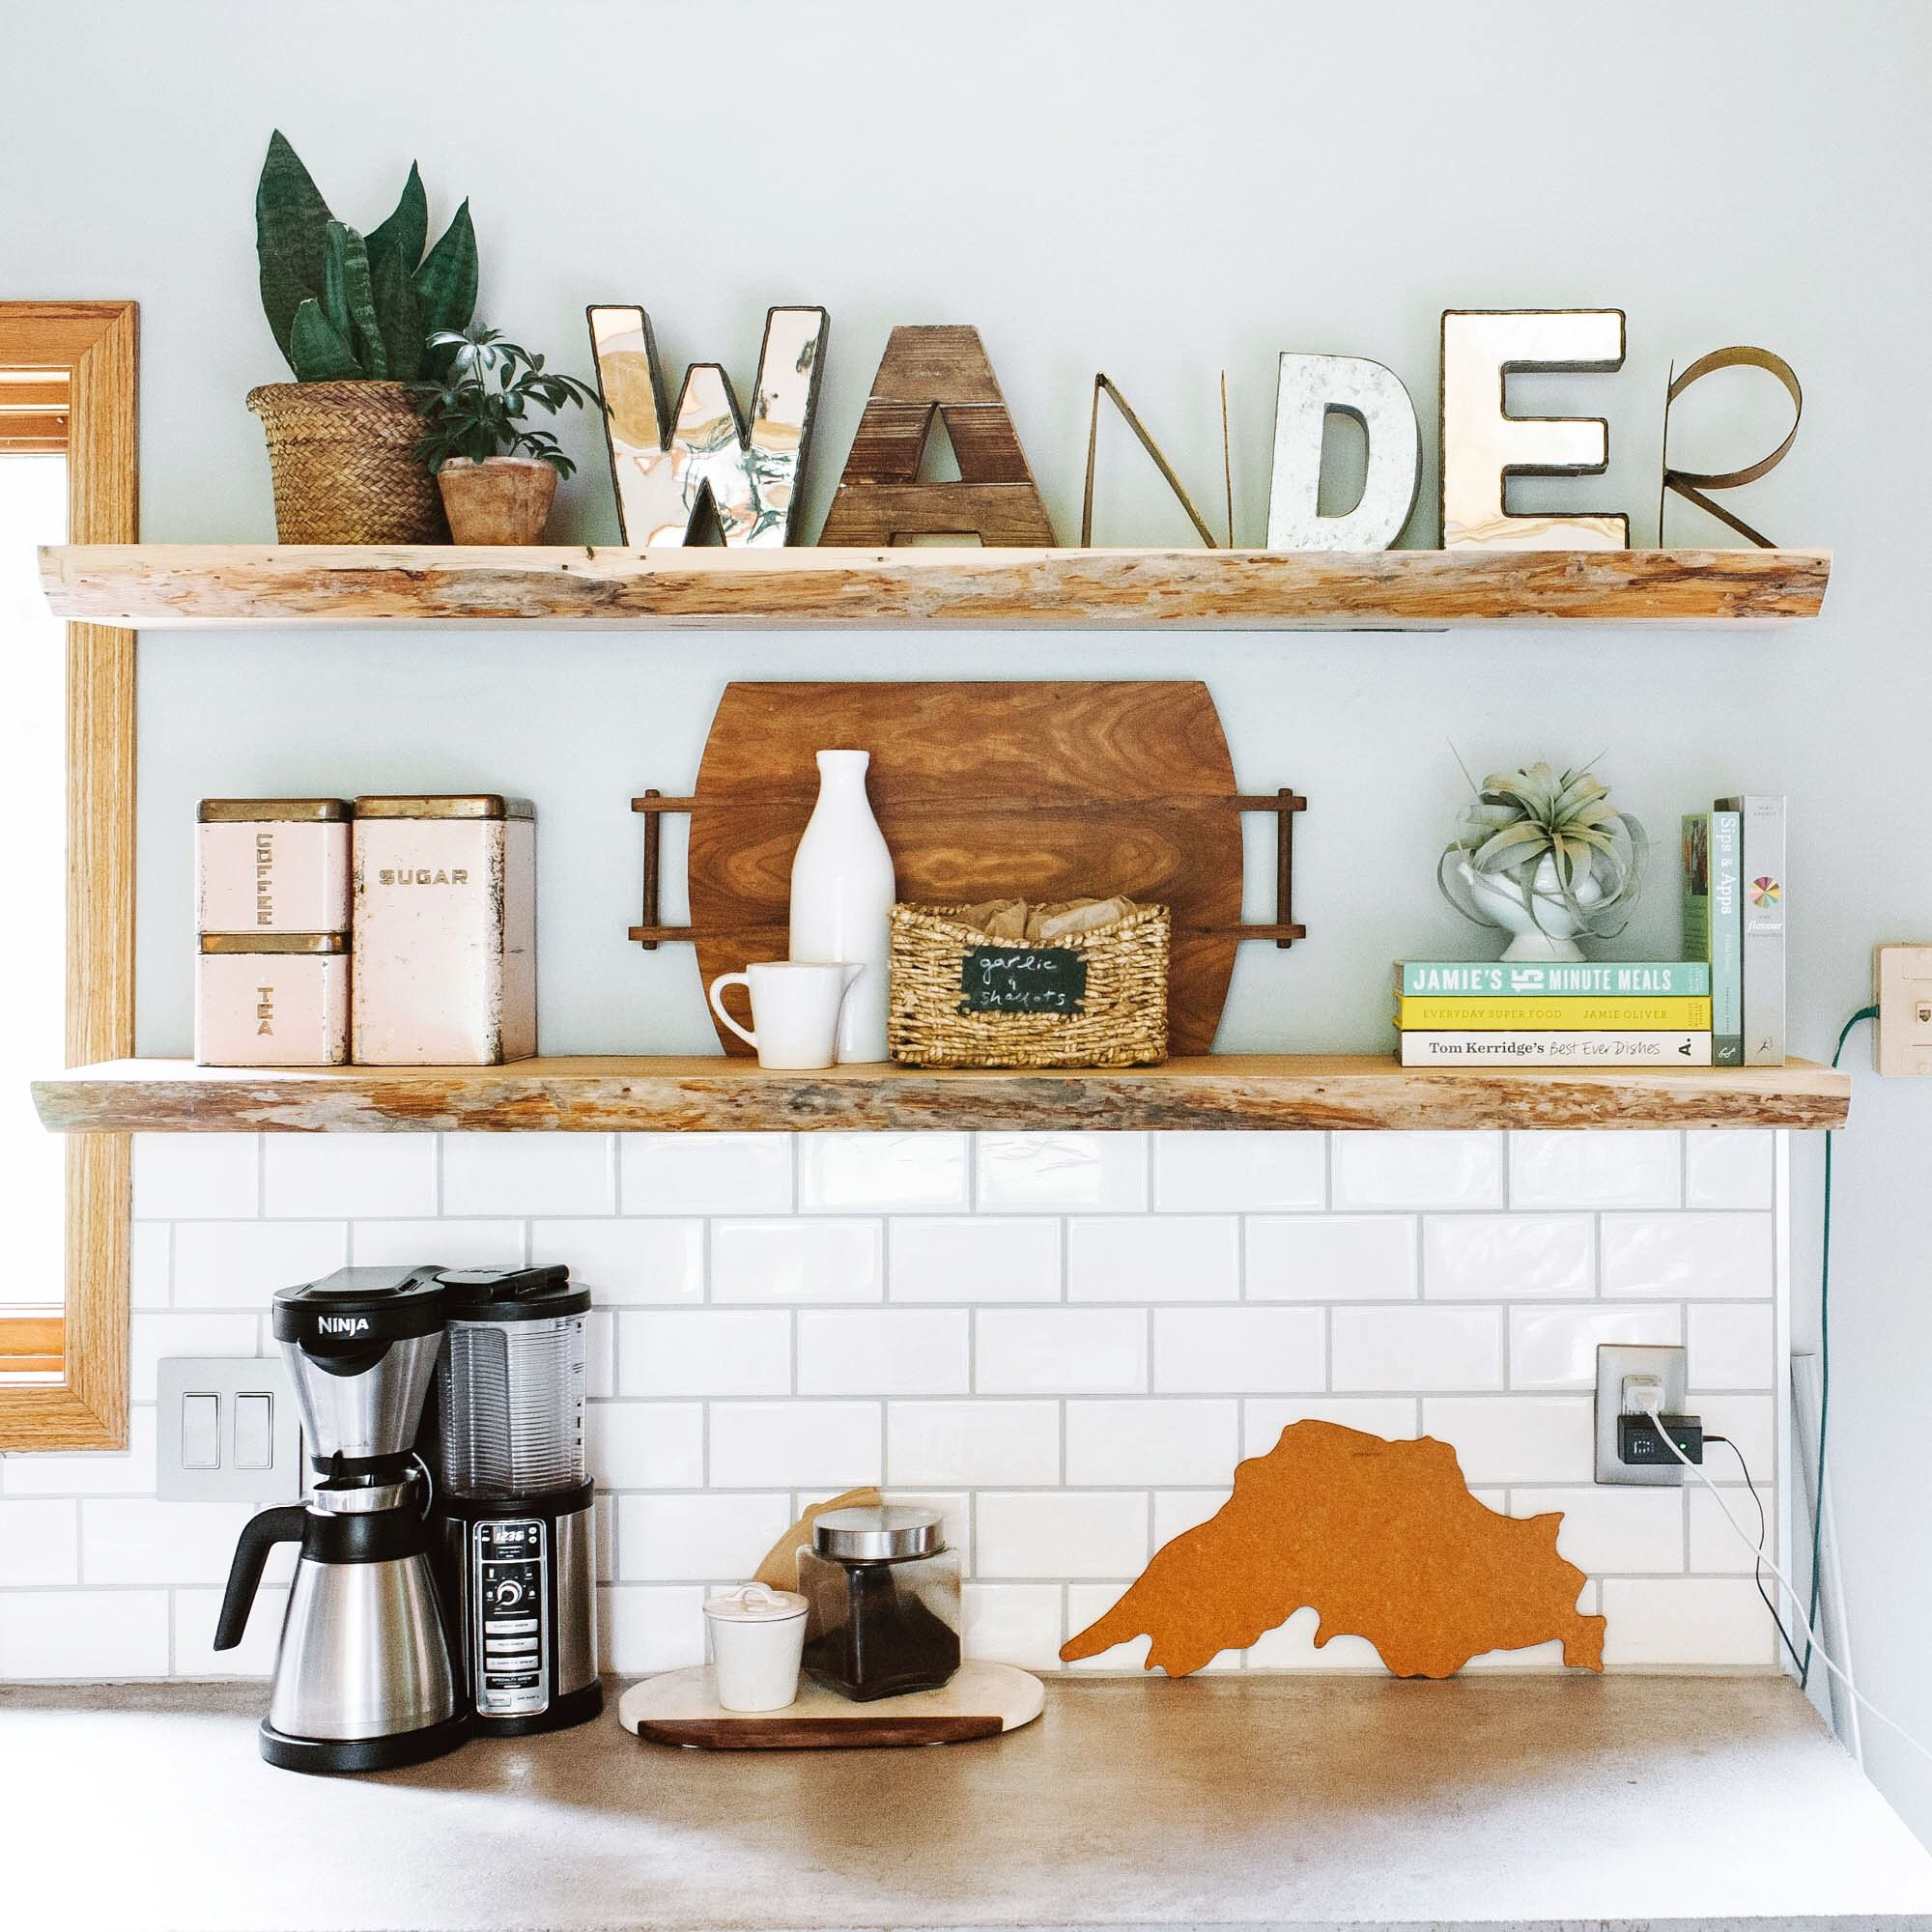 How to decorate kitchen open shelves live edge reclaimed wood how to decorate kitchen open shelves live edge reclaimed wood open shelving and subway dailygadgetfo Images